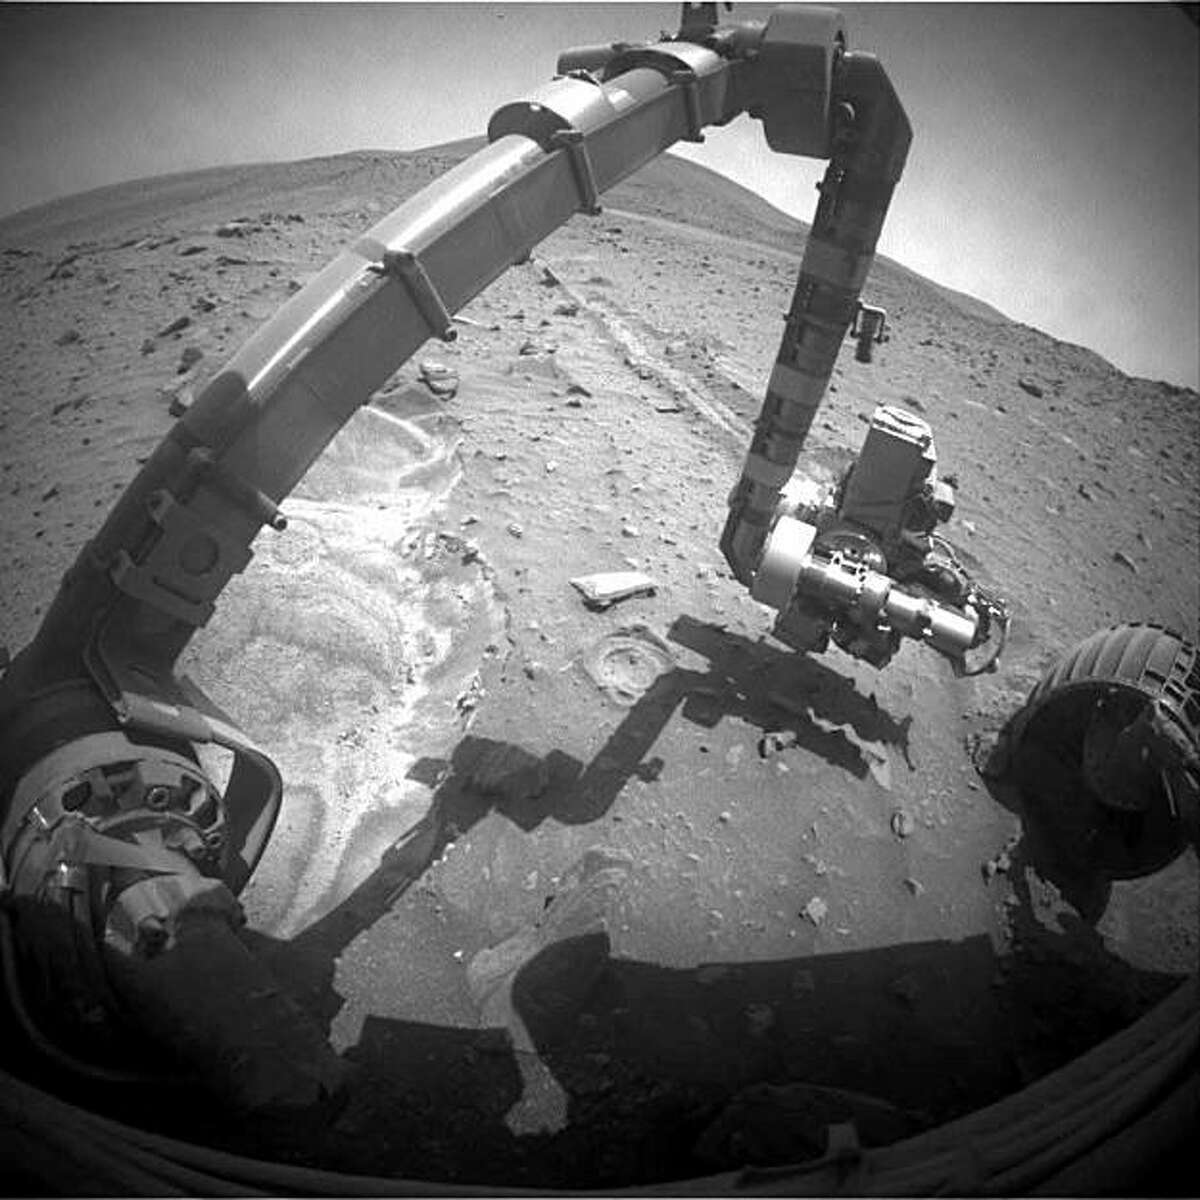 Mars rover Spirit photographs the sand that its left front wheel dug up recently. Spirit has been stuck in the sand since April 2009.